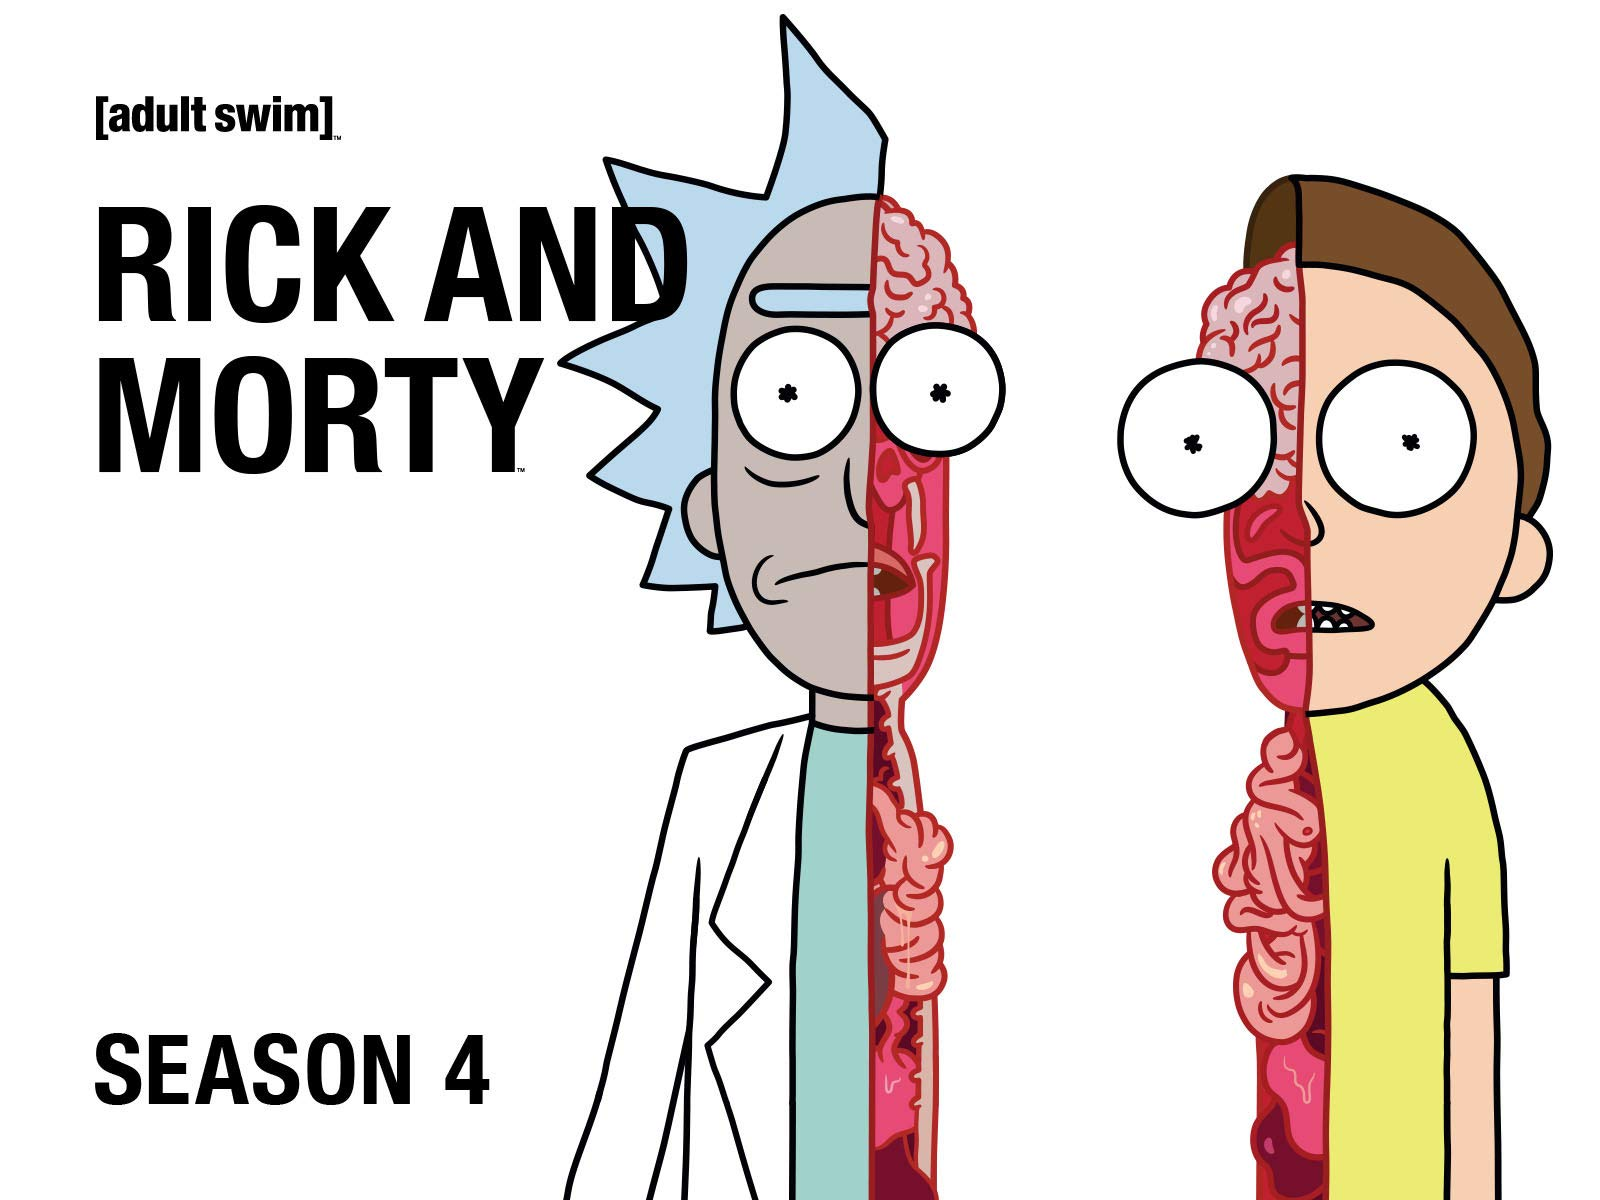 What Has Been In The Audience Most After Rick And Morty Season 4 Ended?